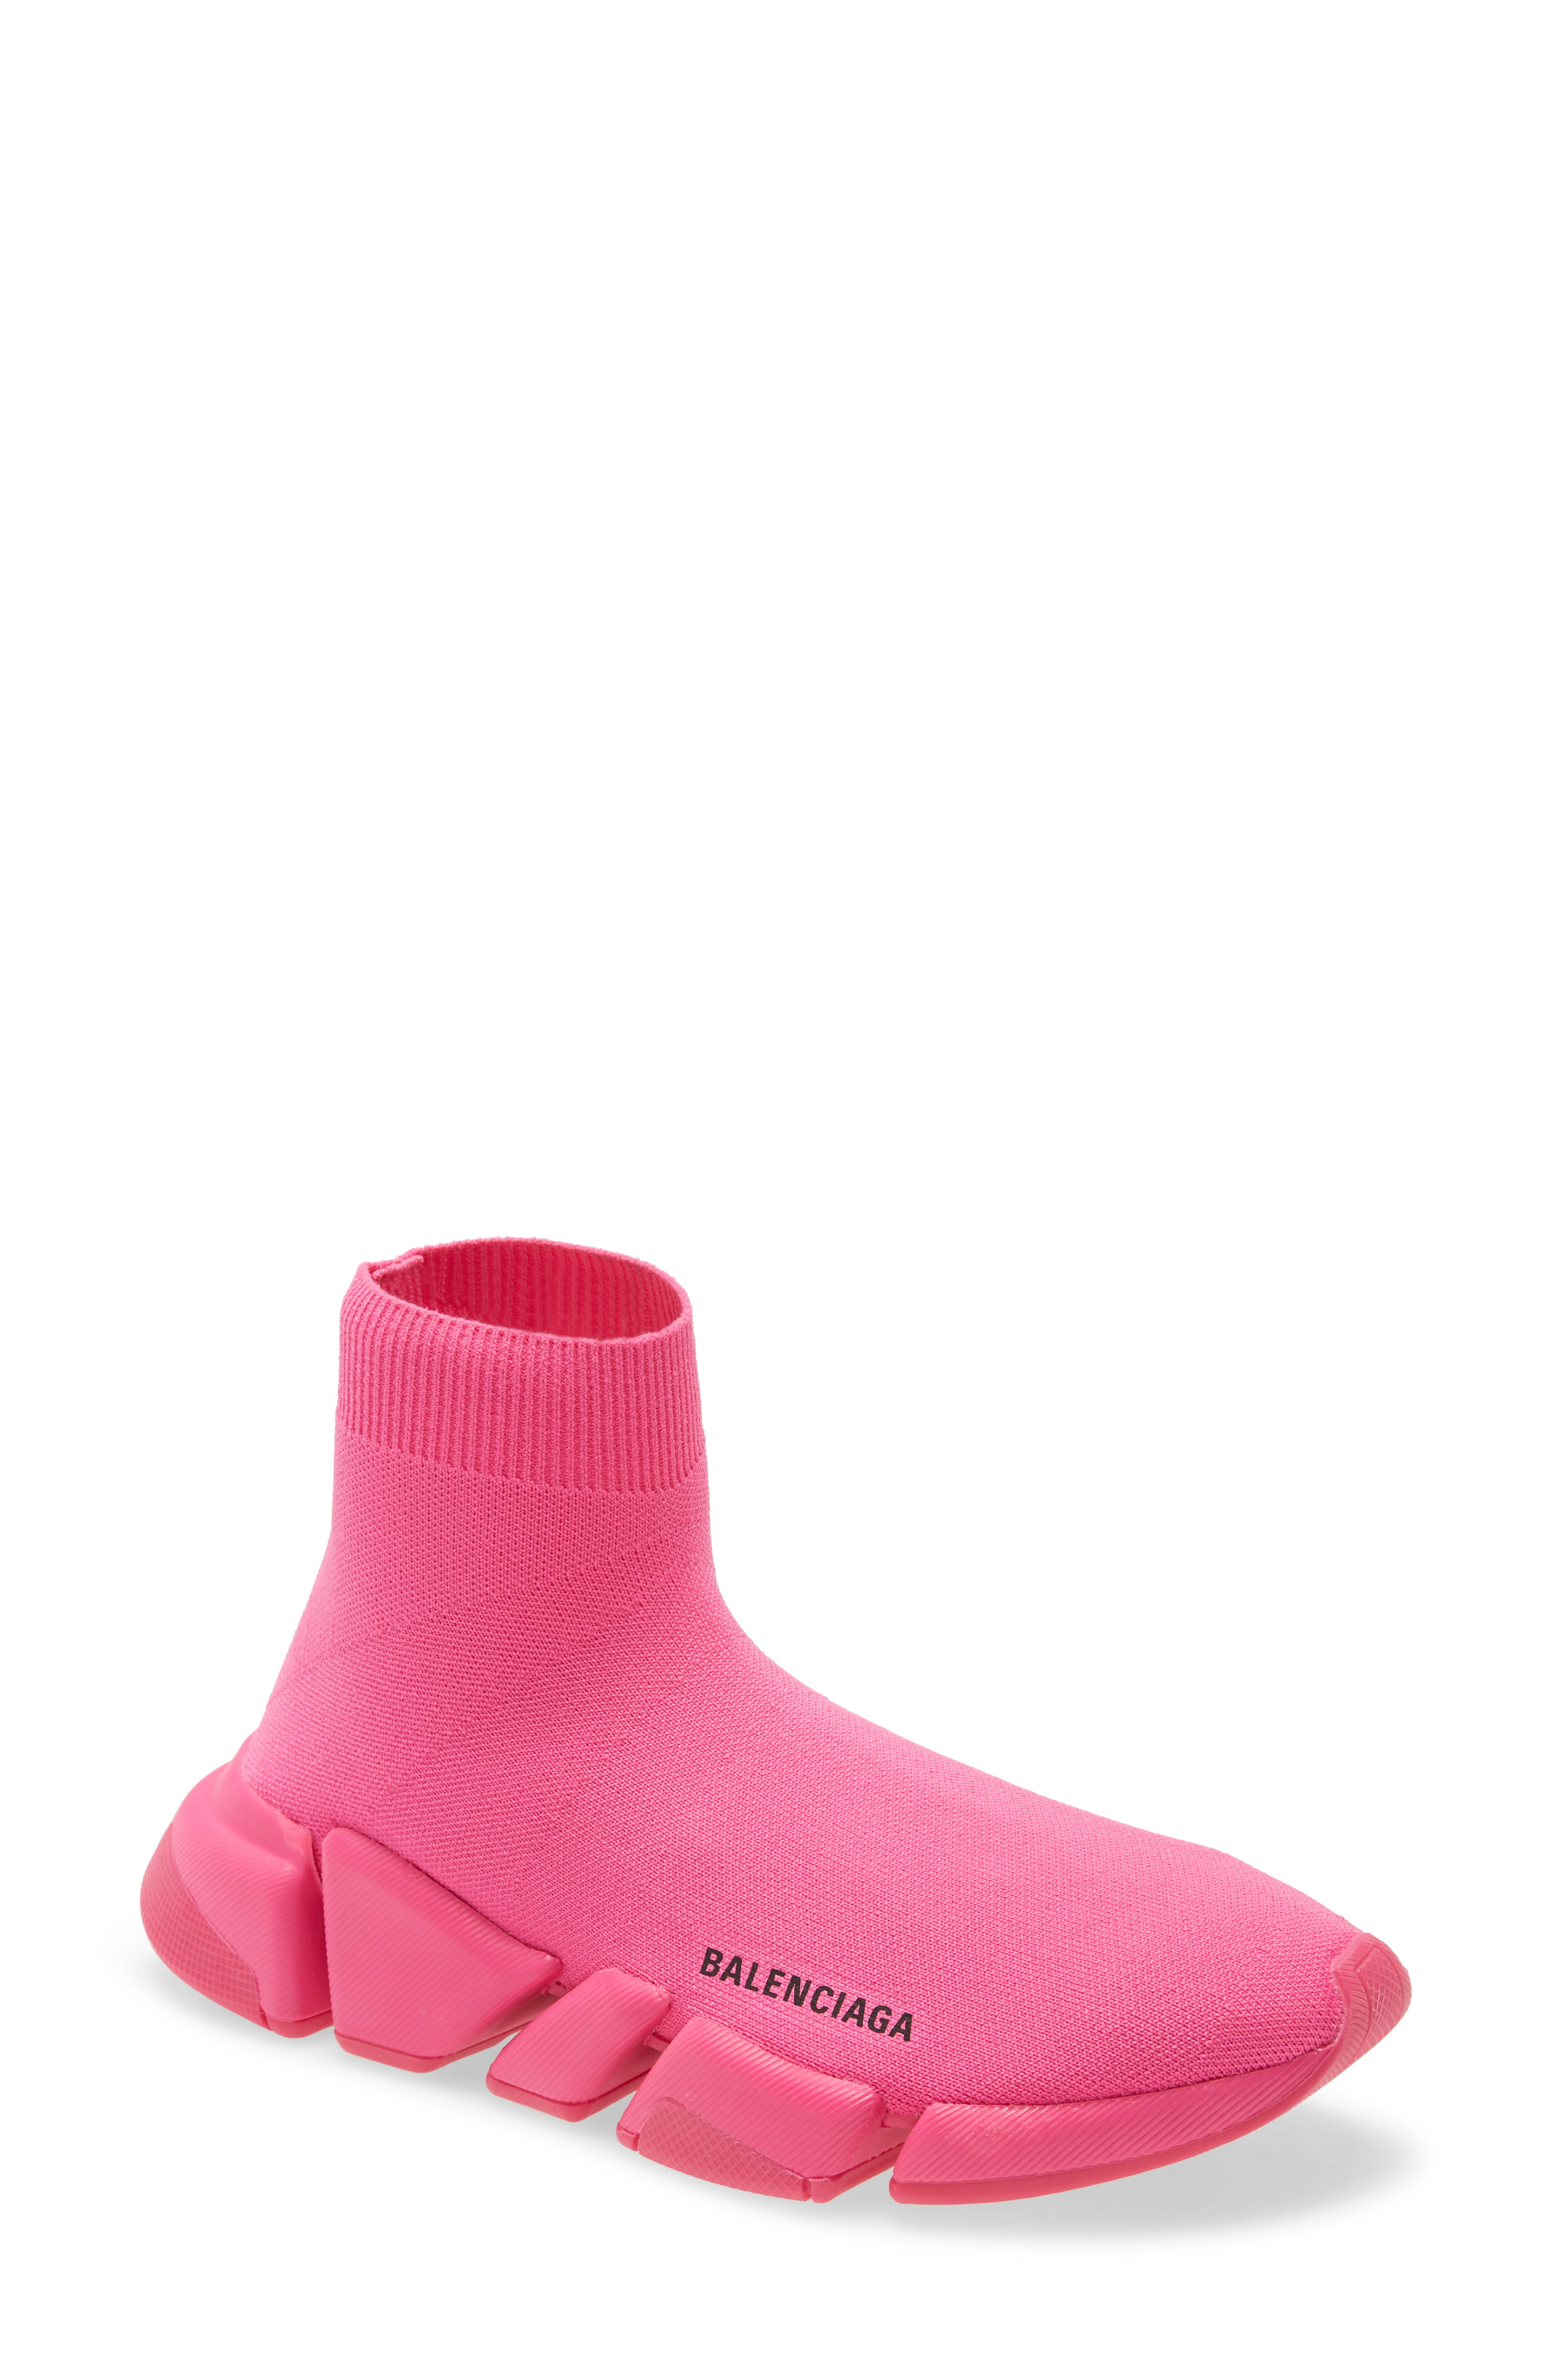 balenciagas sock shoe